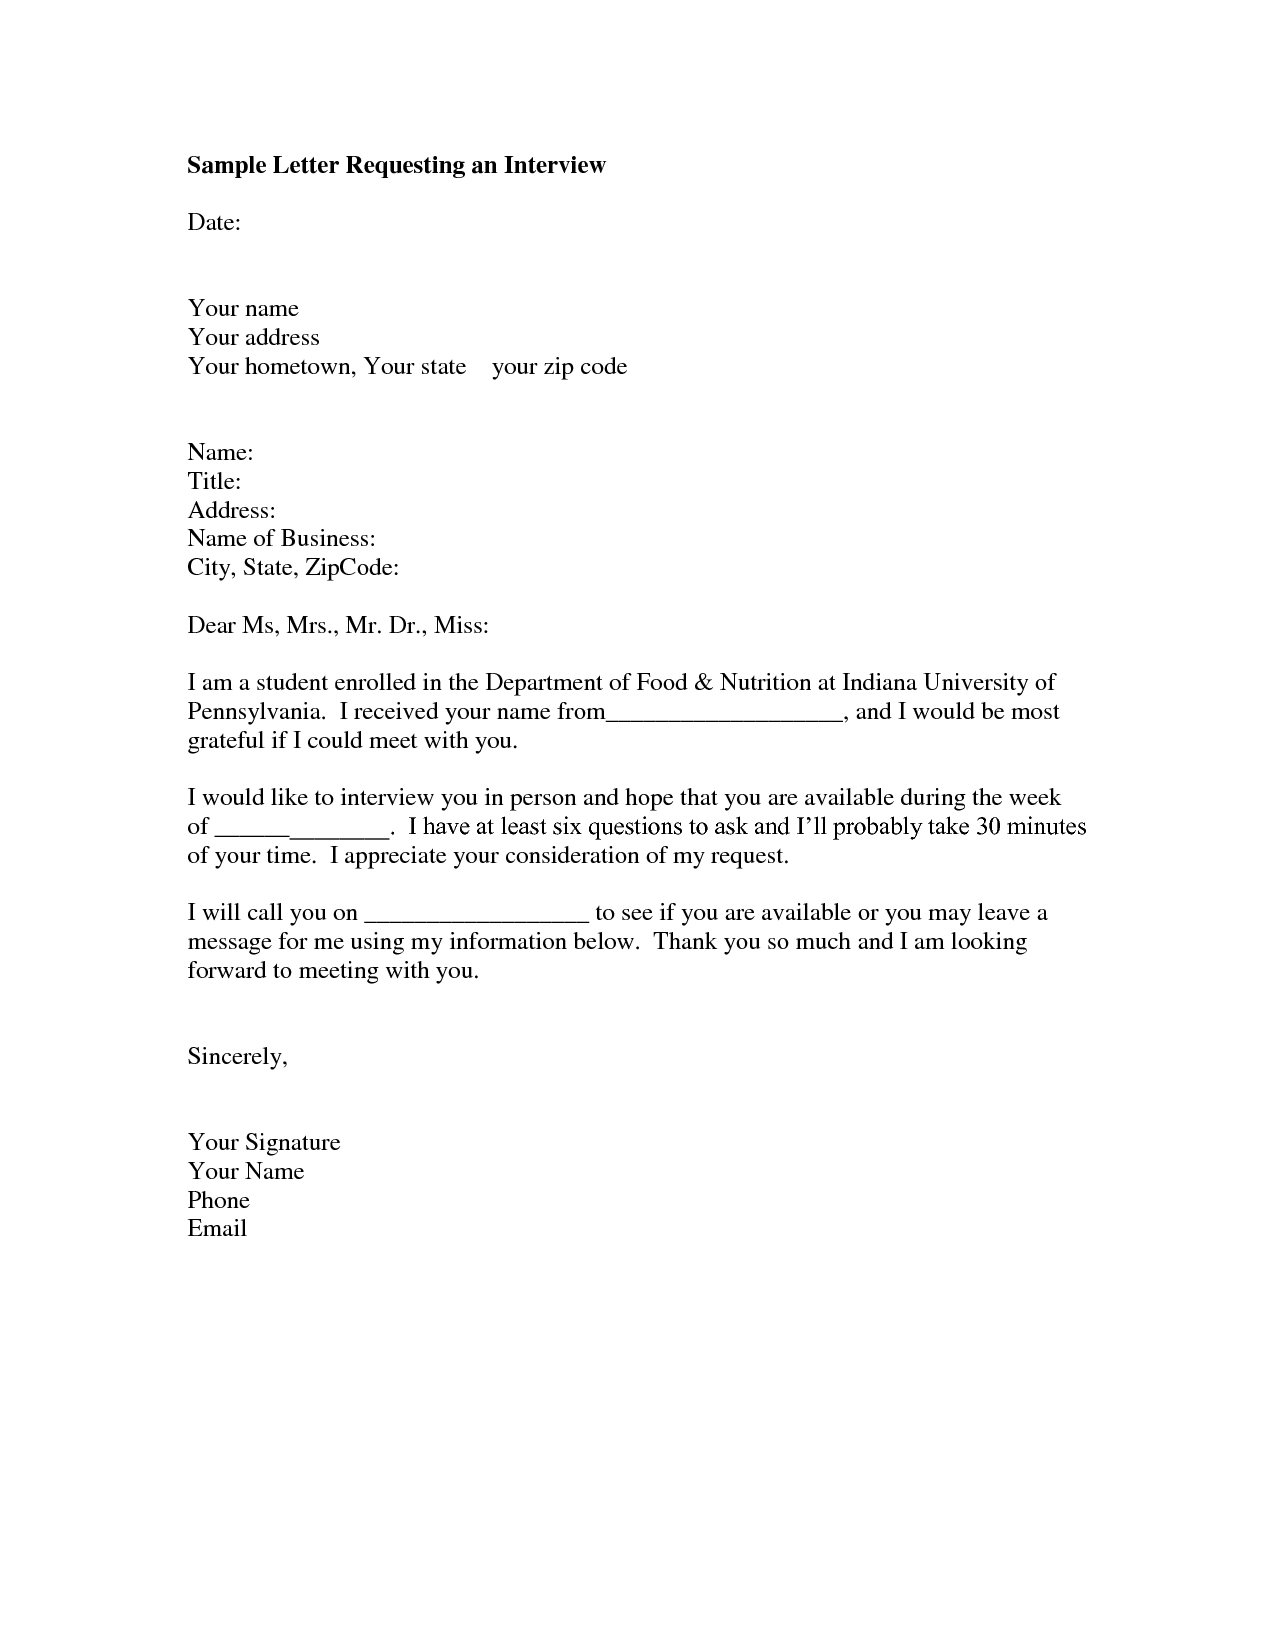 Lovely INTERVIEW REQUEST LETTER   Sample Format Of A Letter You Can Use To Request  An Interview With A Prospecitive Employer.